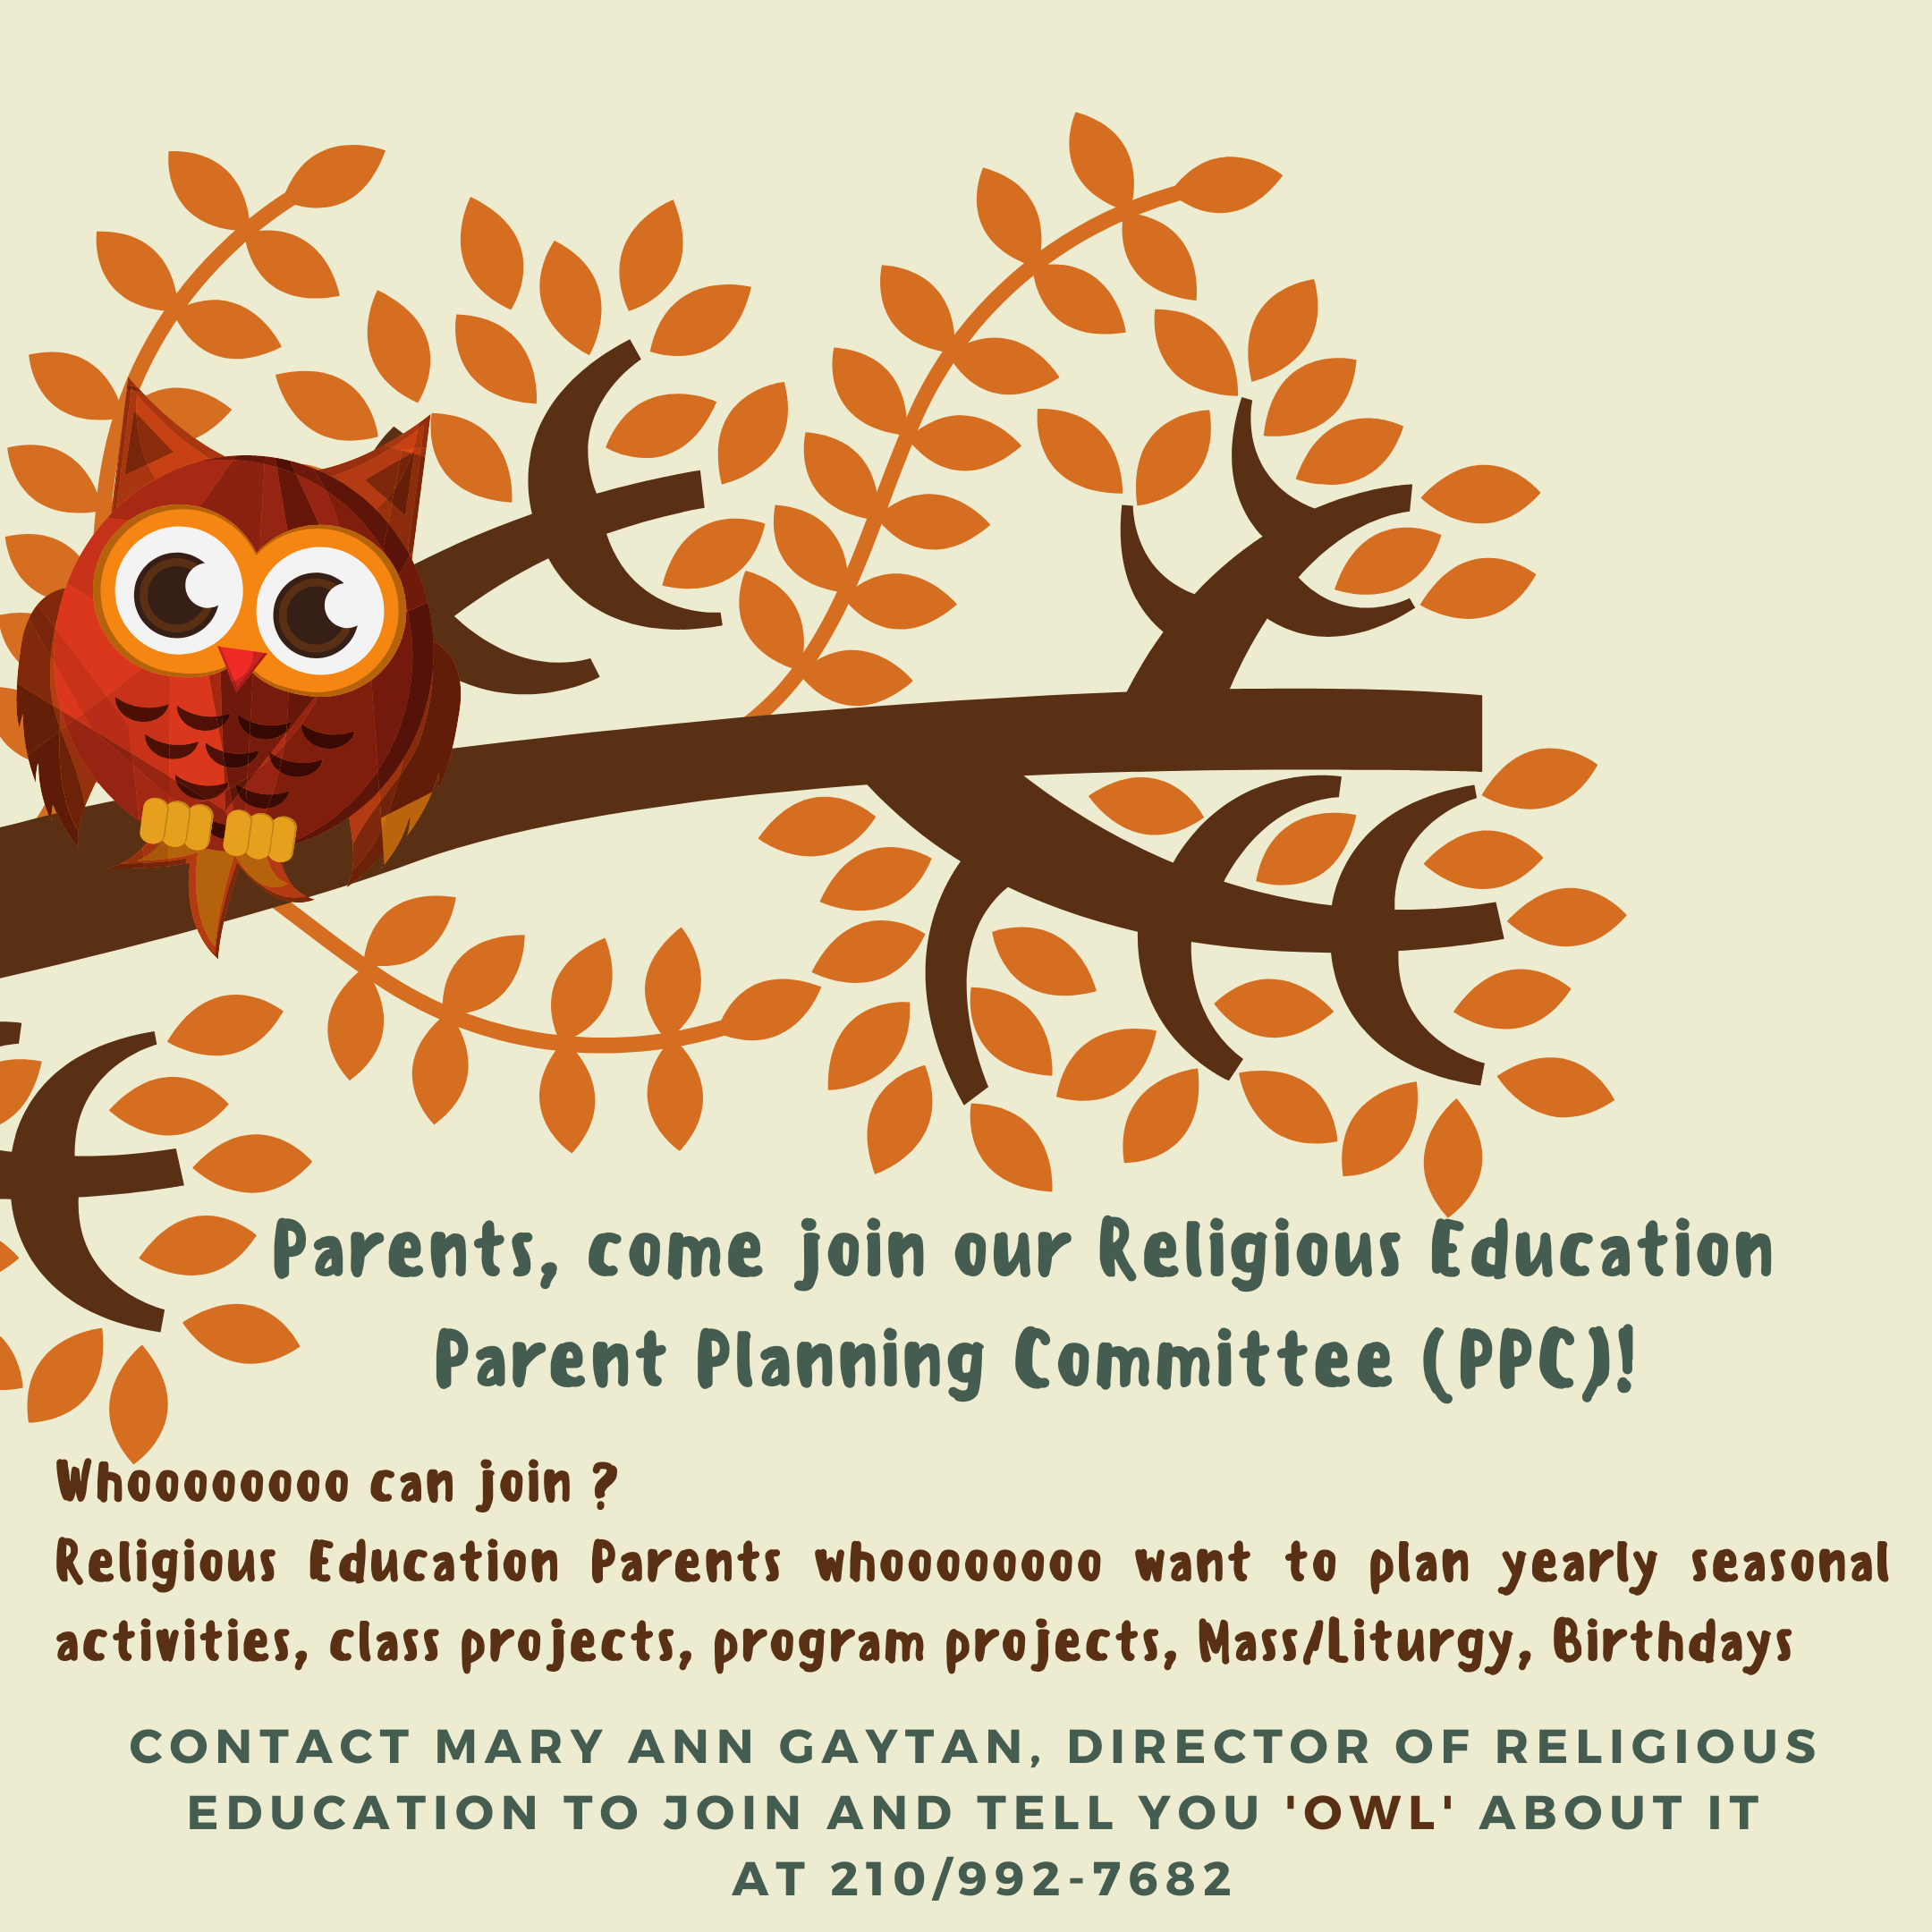 Parents, come join Religious Education PPC to plan yearly seasonal activities